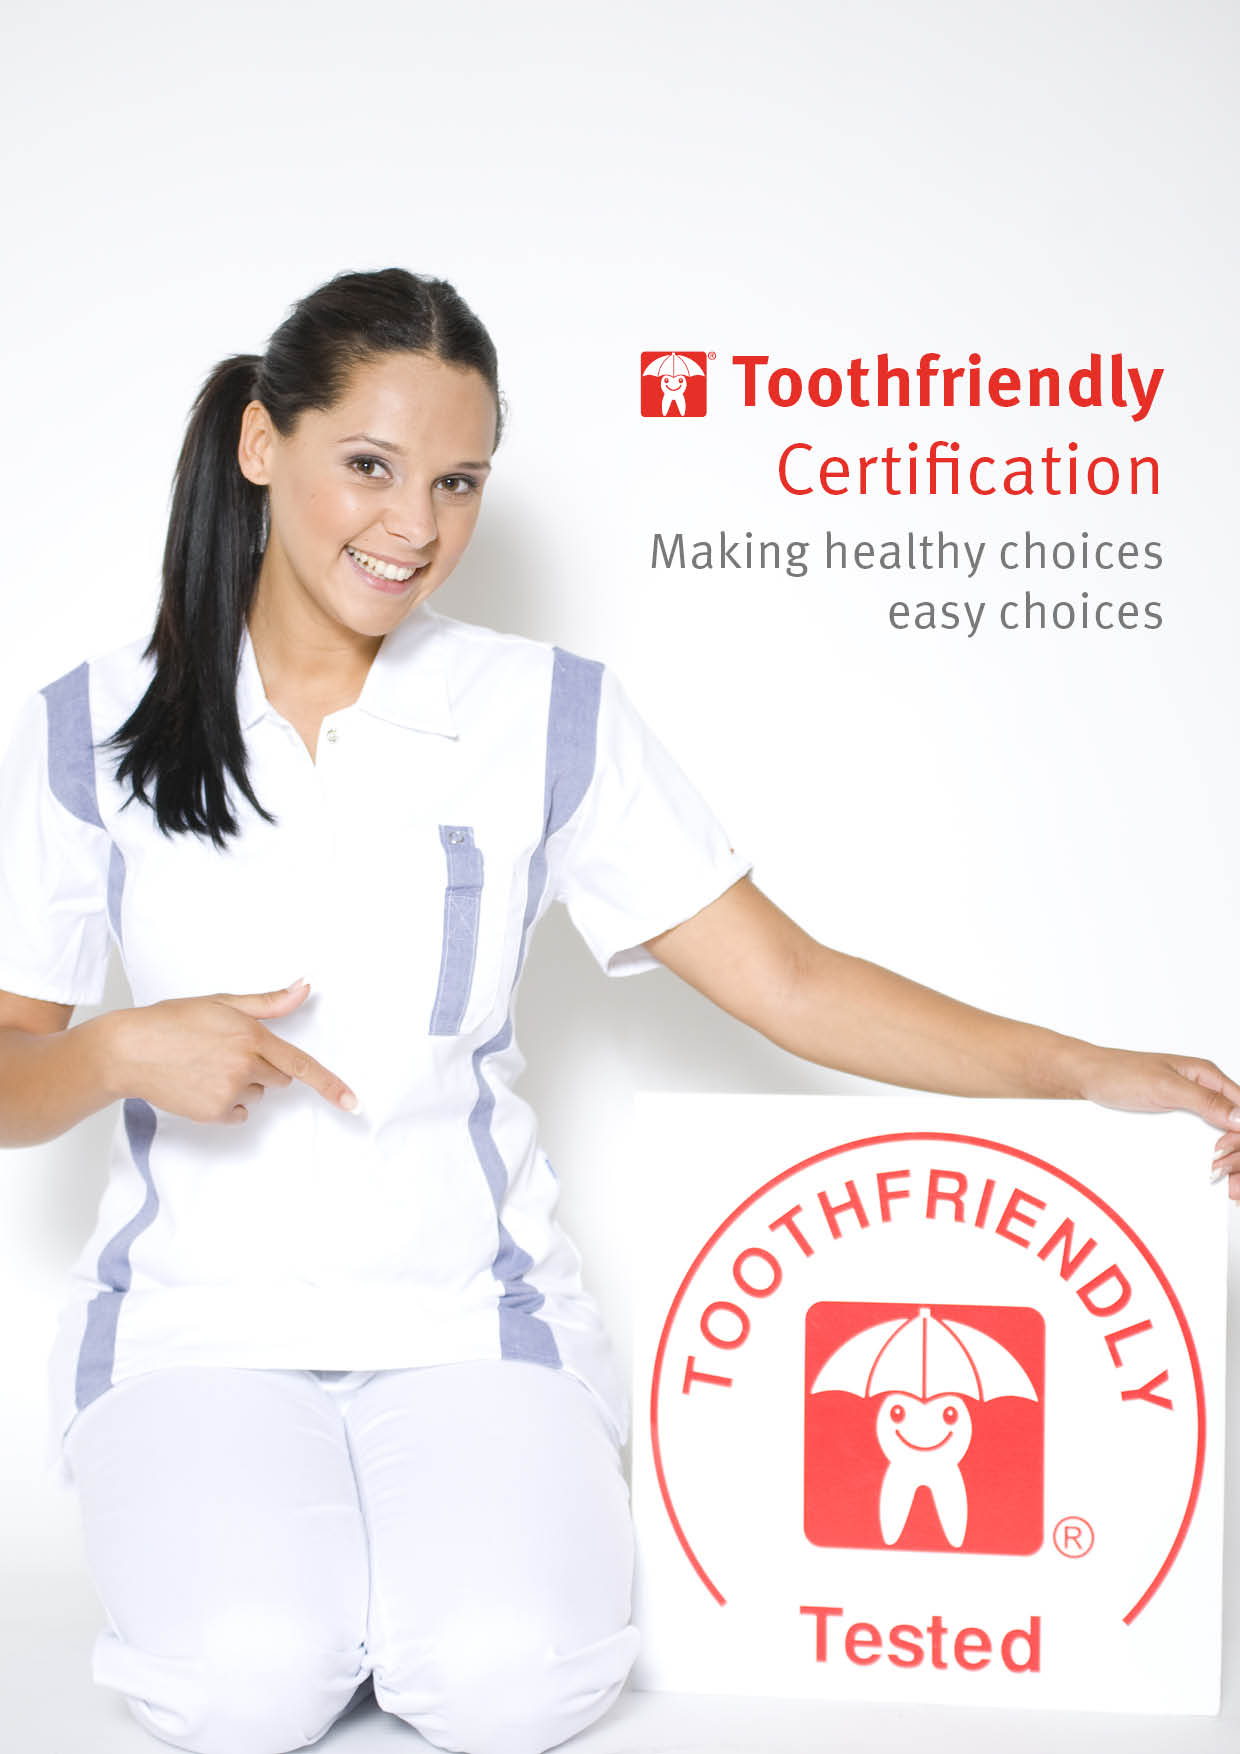 Toothfriendly Certification cover